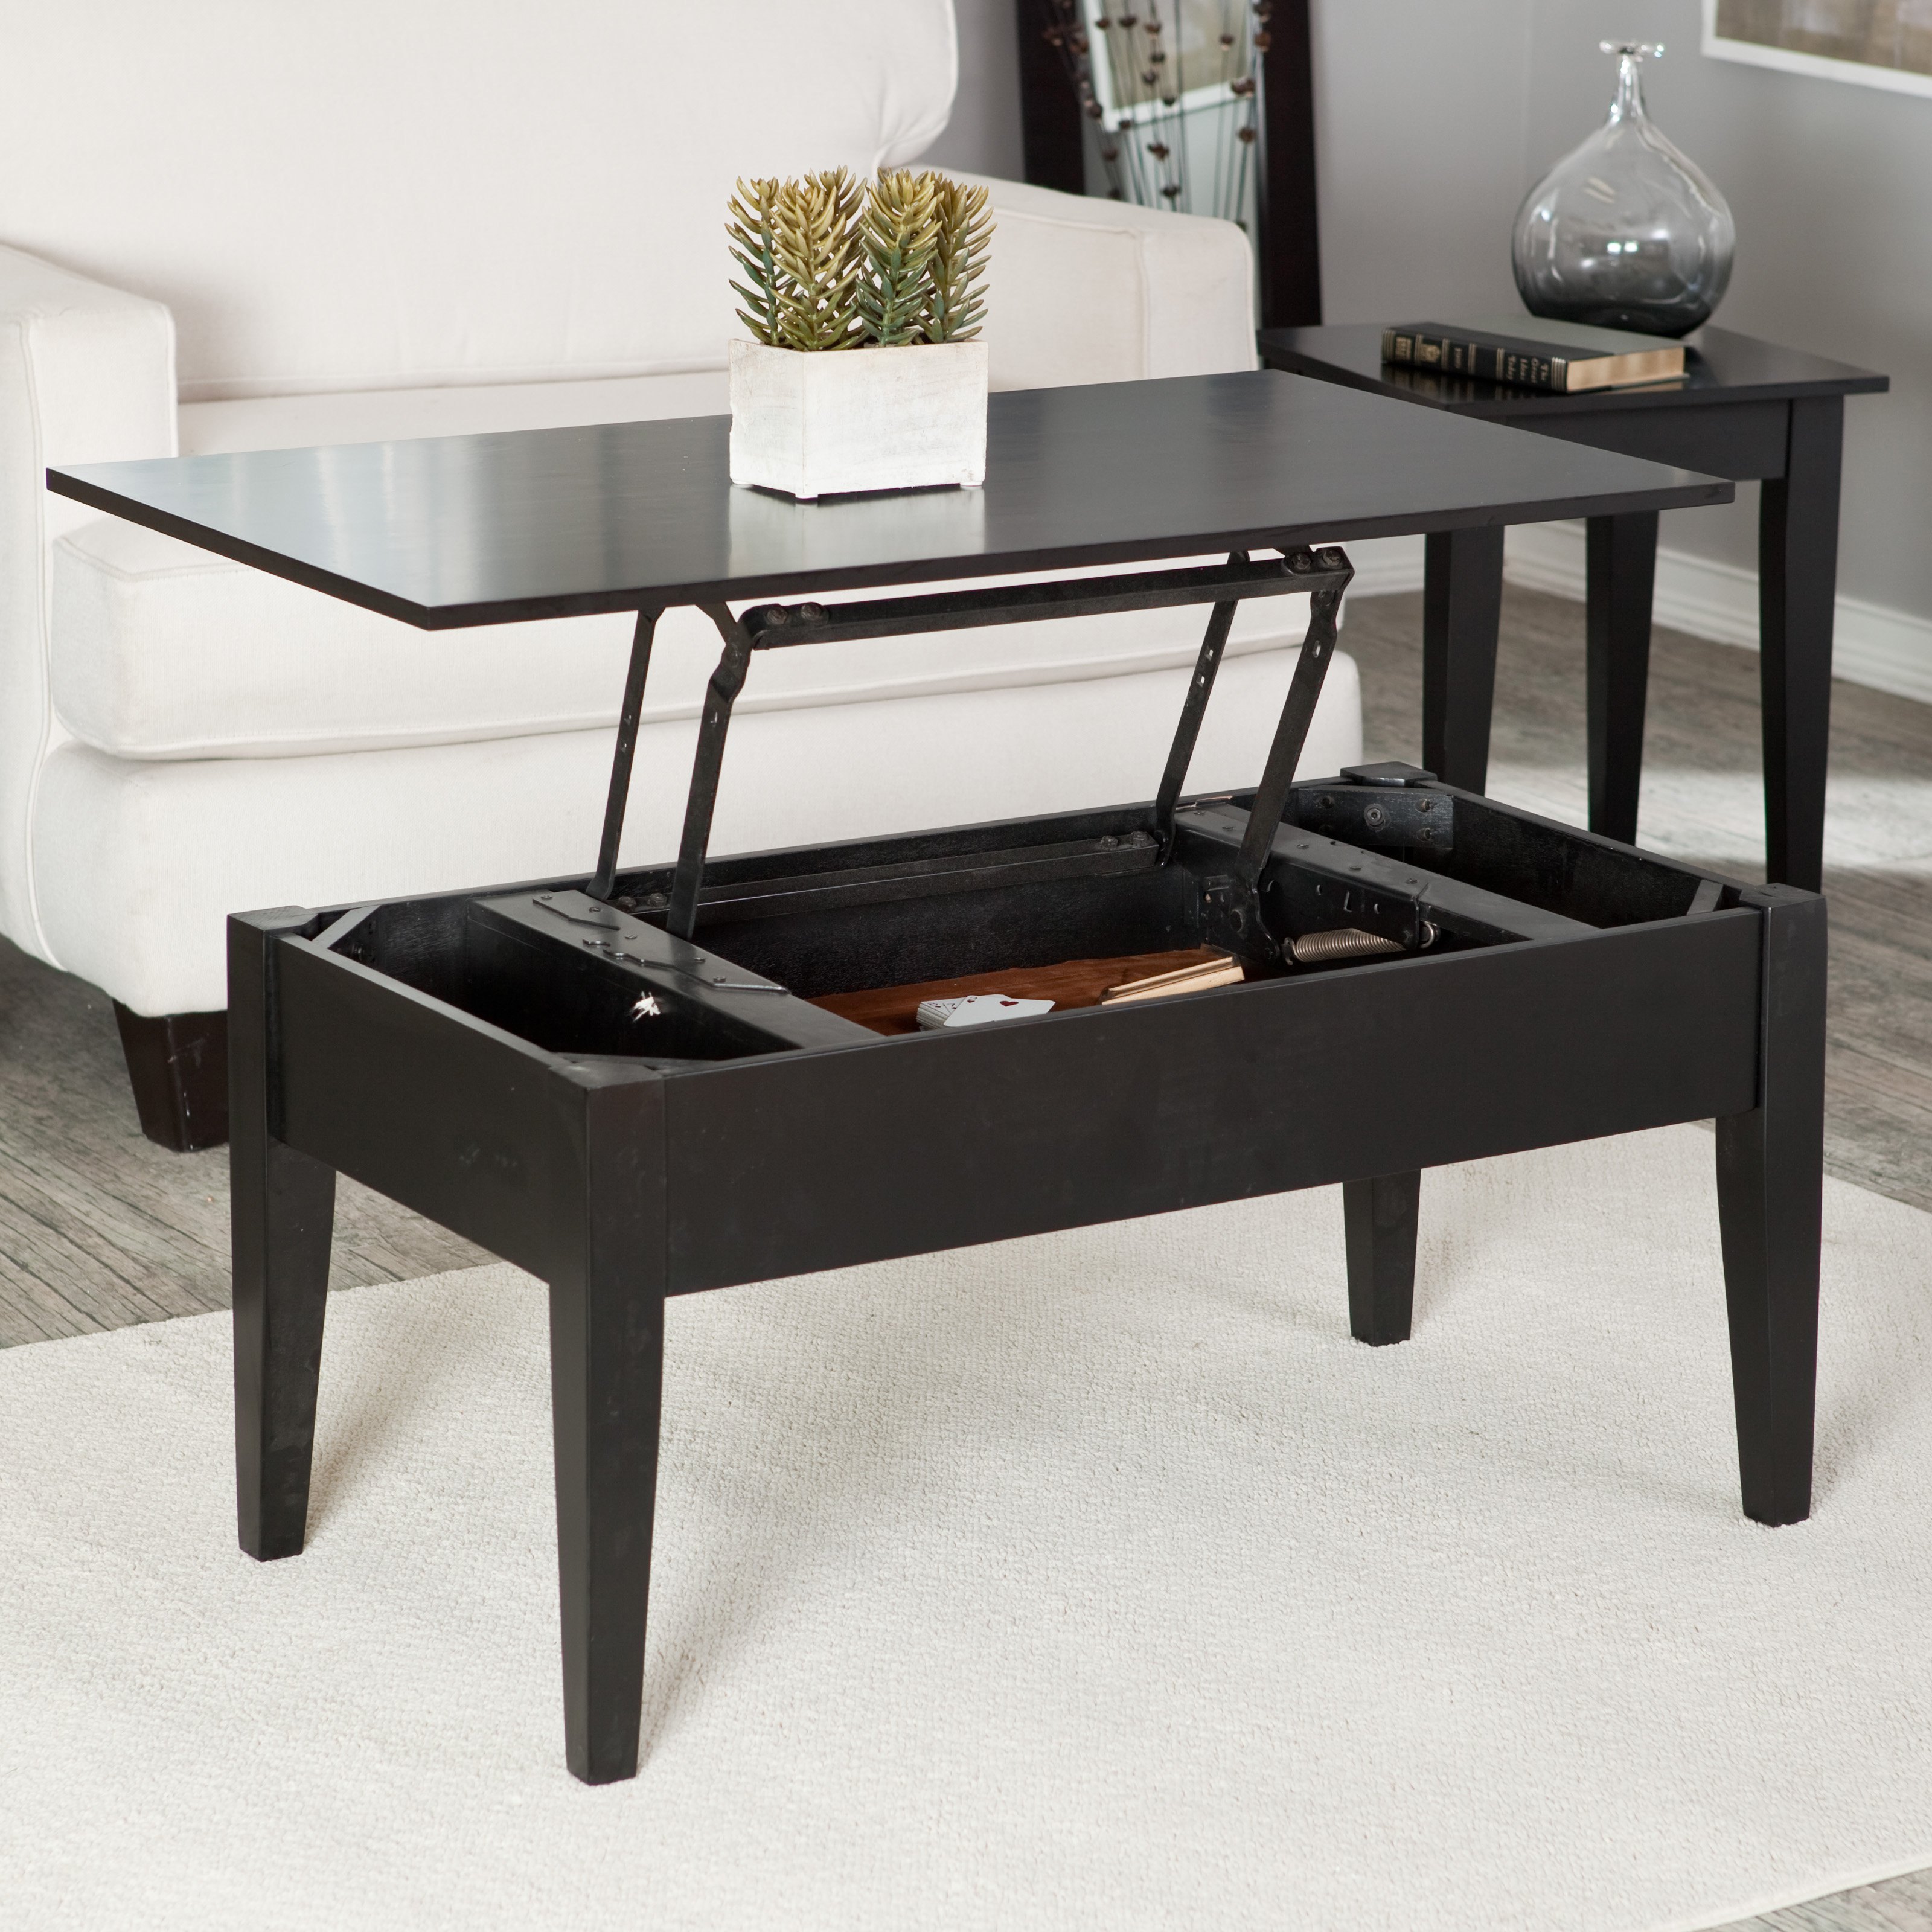 Coffee Table With Lift Top Plus Lennox Lift Top Coffee Table Plus with proportions 3200 X 3200